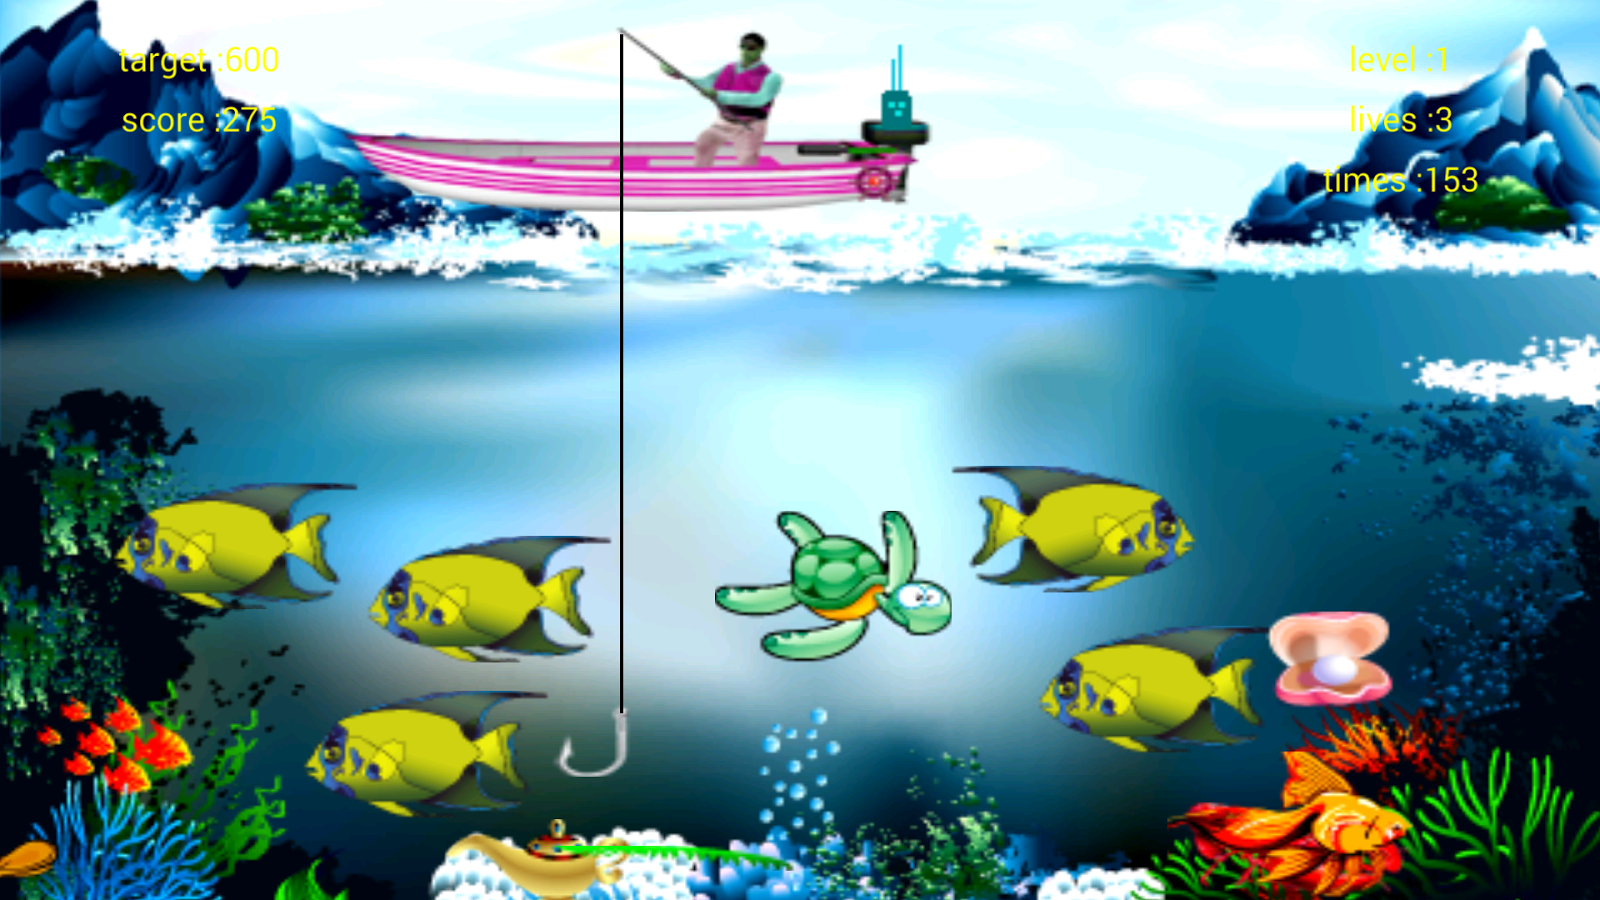 Fishing game android apps on google play for Fishing game android